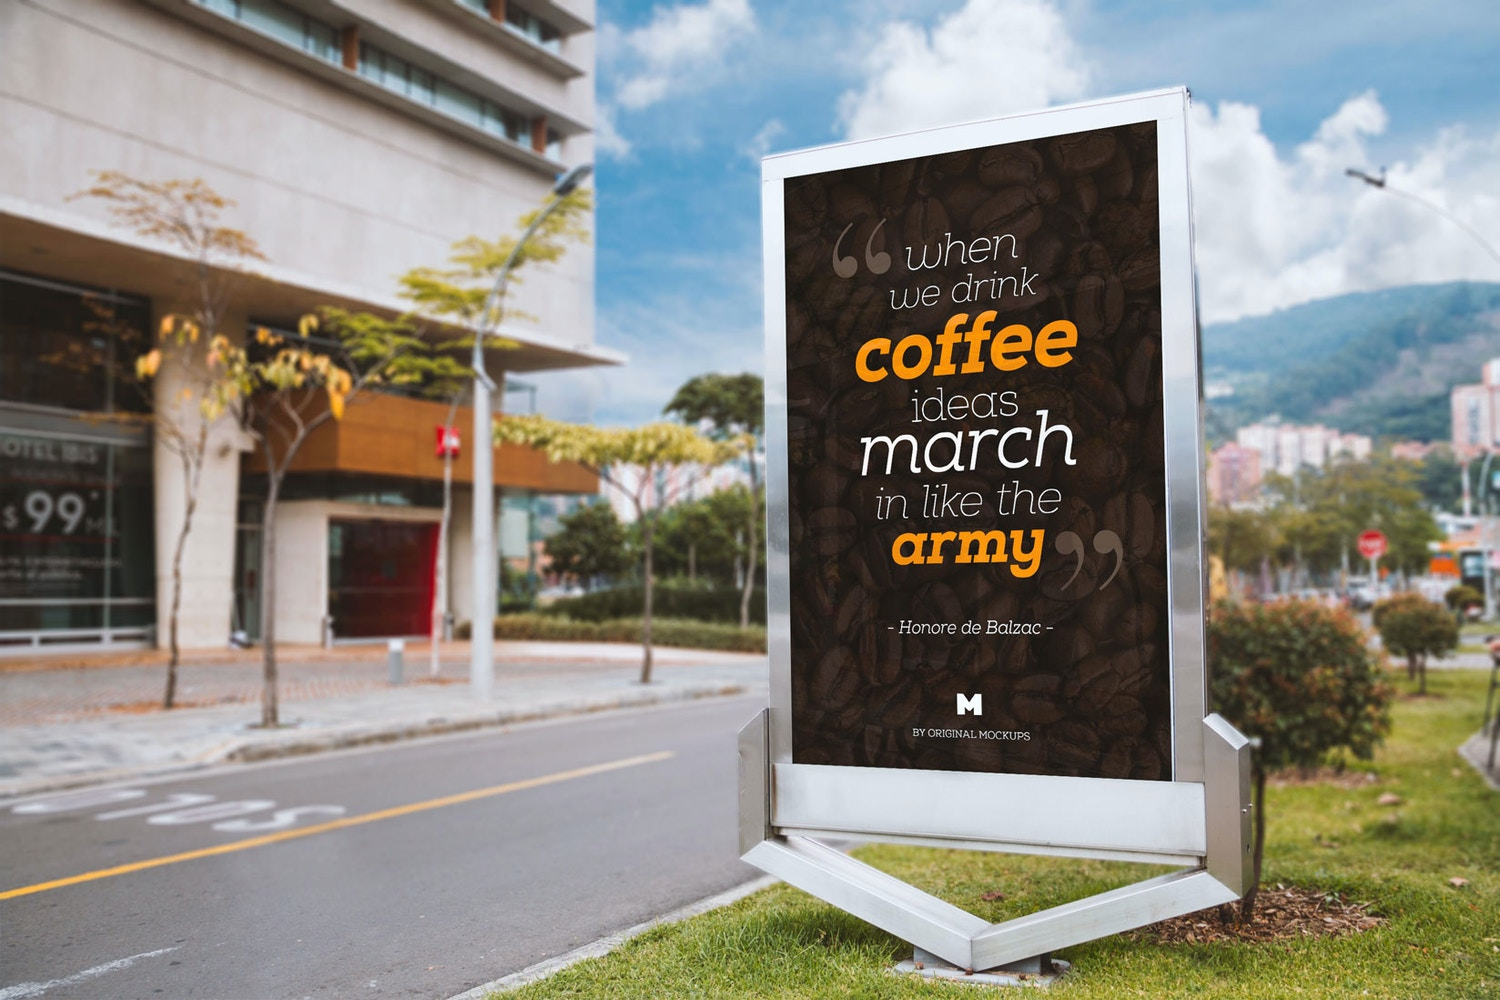 Billboard Outdoor Advertising Psd Mockup Original Mockups